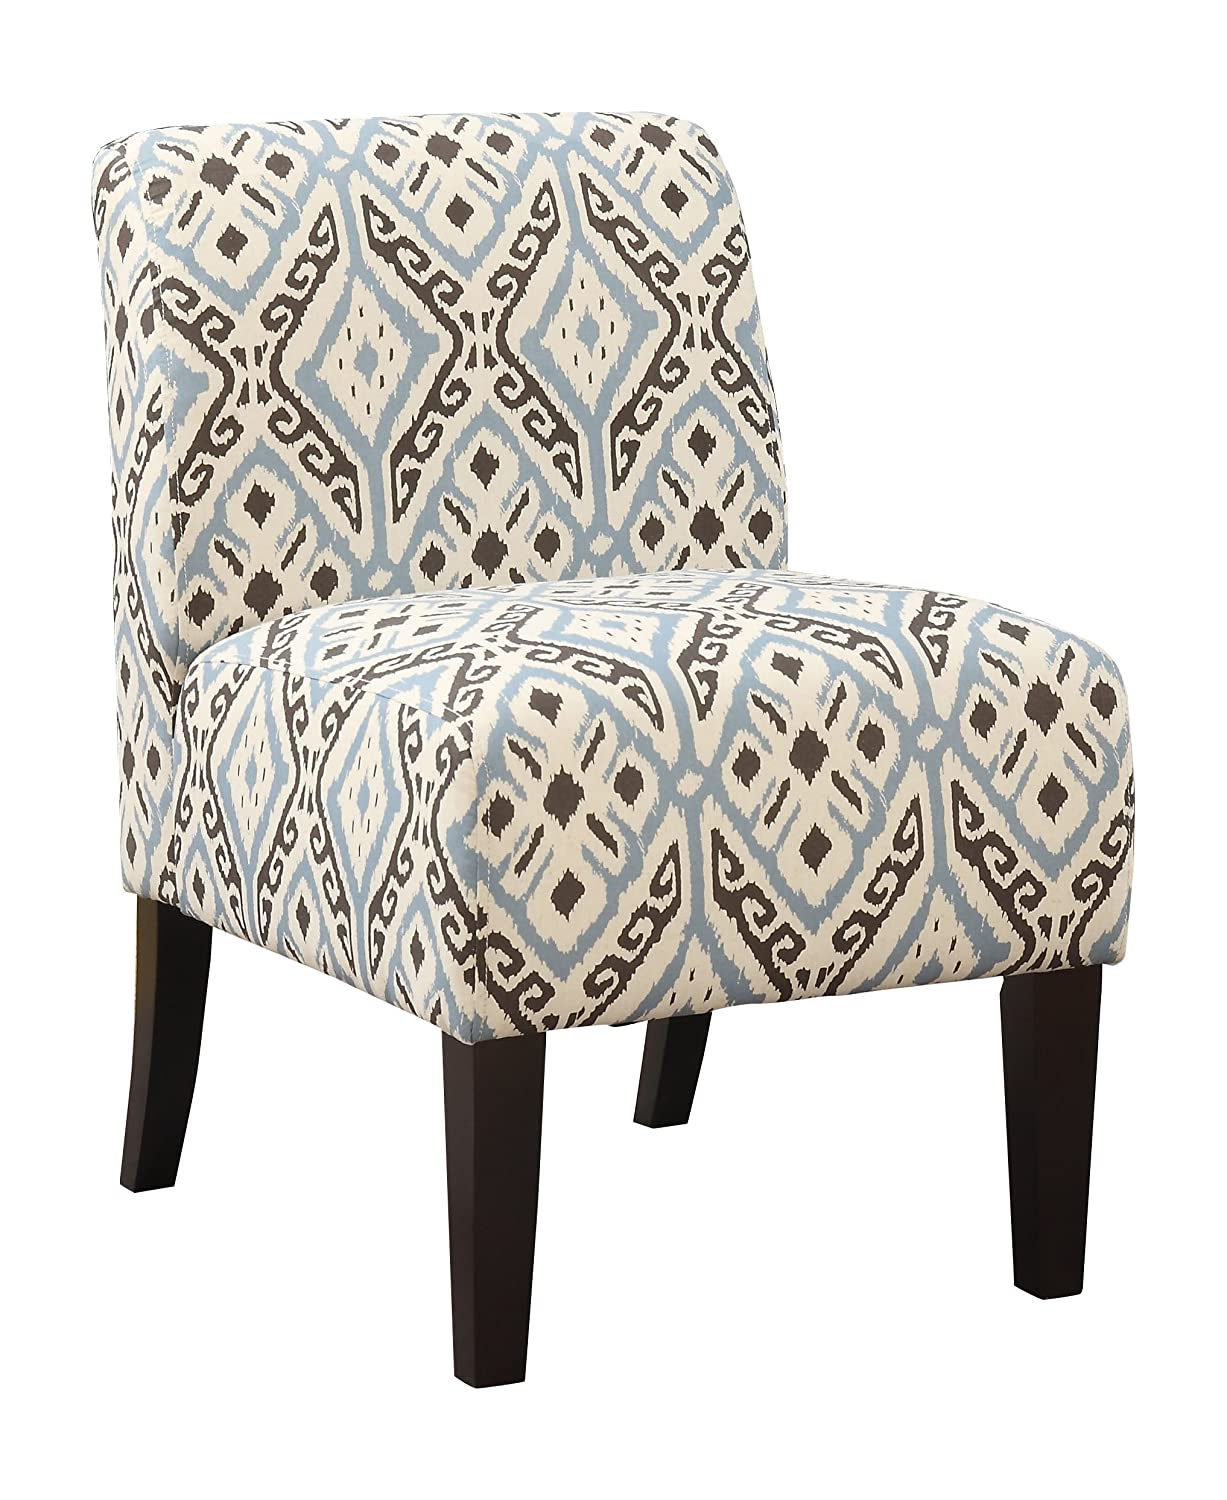 Awe Inspiring 1Perfectchoice Ollano Accent Chair Blue Evergreenethics Interior Chair Design Evergreenethicsorg